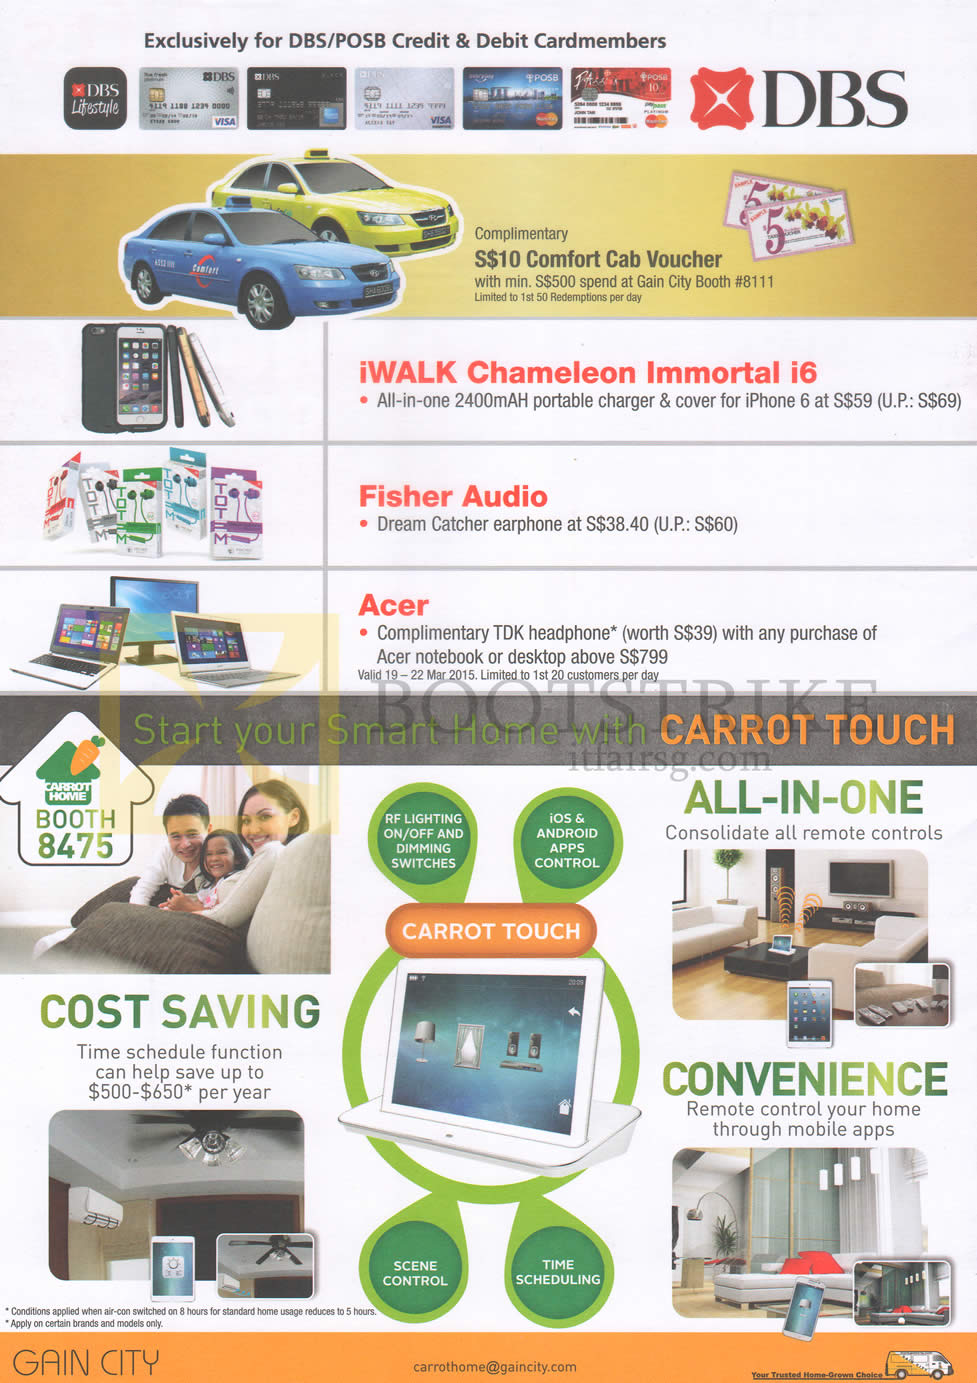 IT SHOW 2015 price list image brochure of Gain City Carrot Touch, DBS, POSB Cardmember Rewards